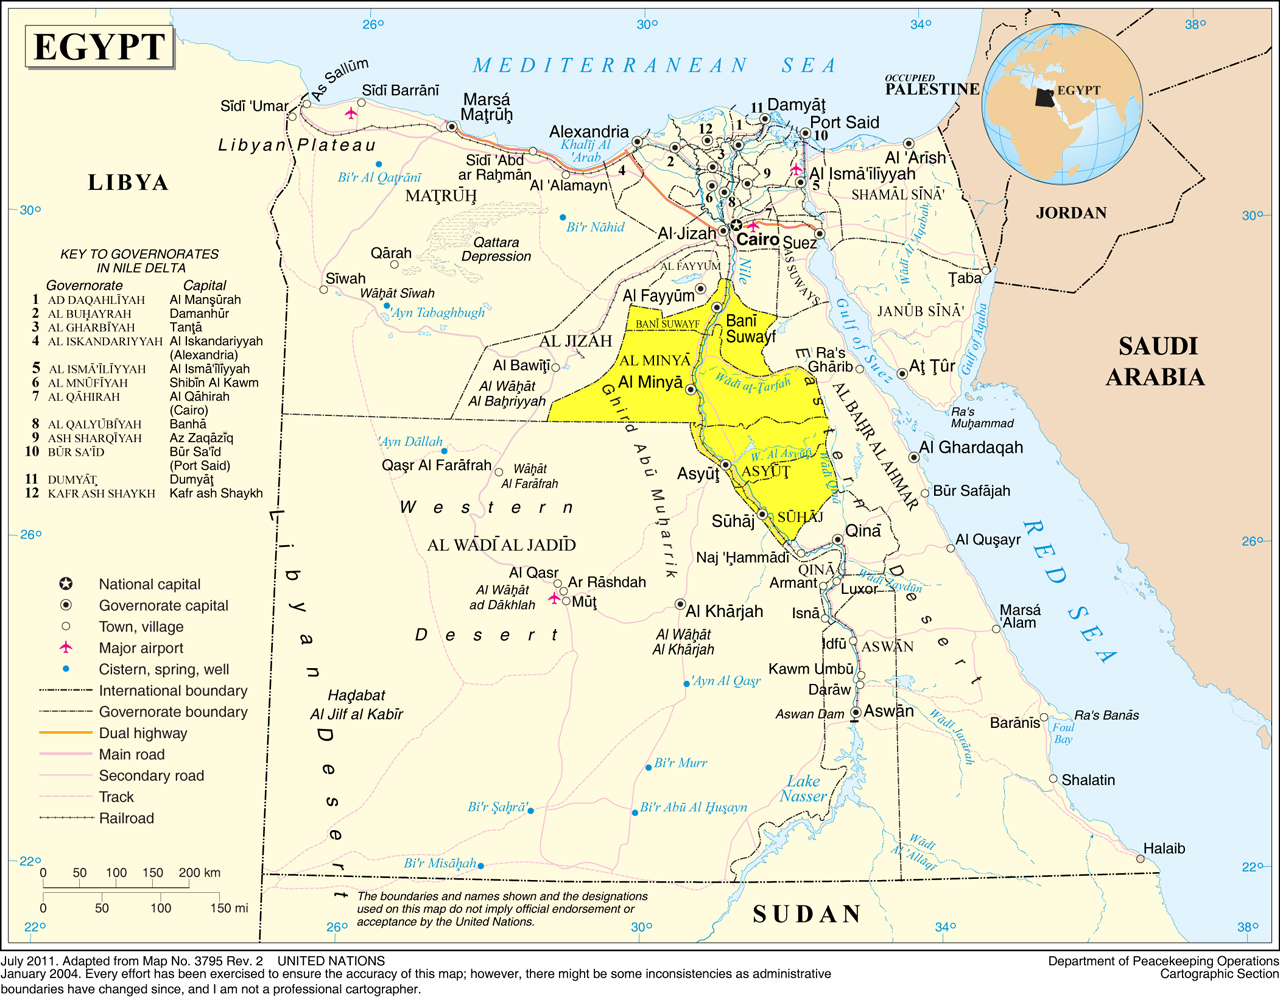 The Nile Valley Middle Egypt